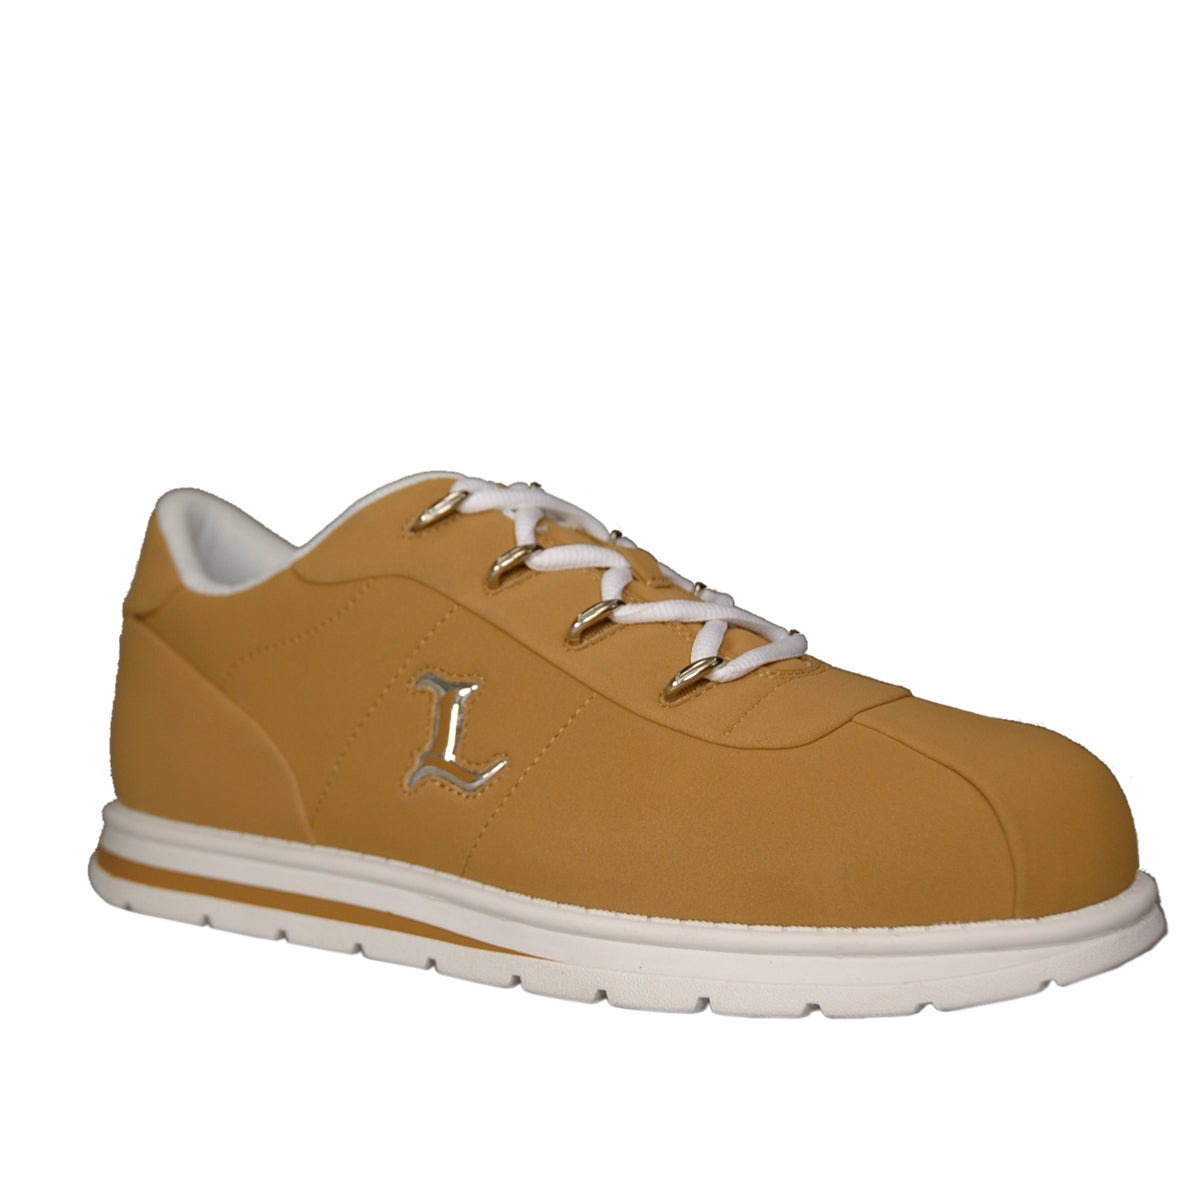 Lugz Men's 'Zrocs DX' Durabrush Wheat/ White Sneakers